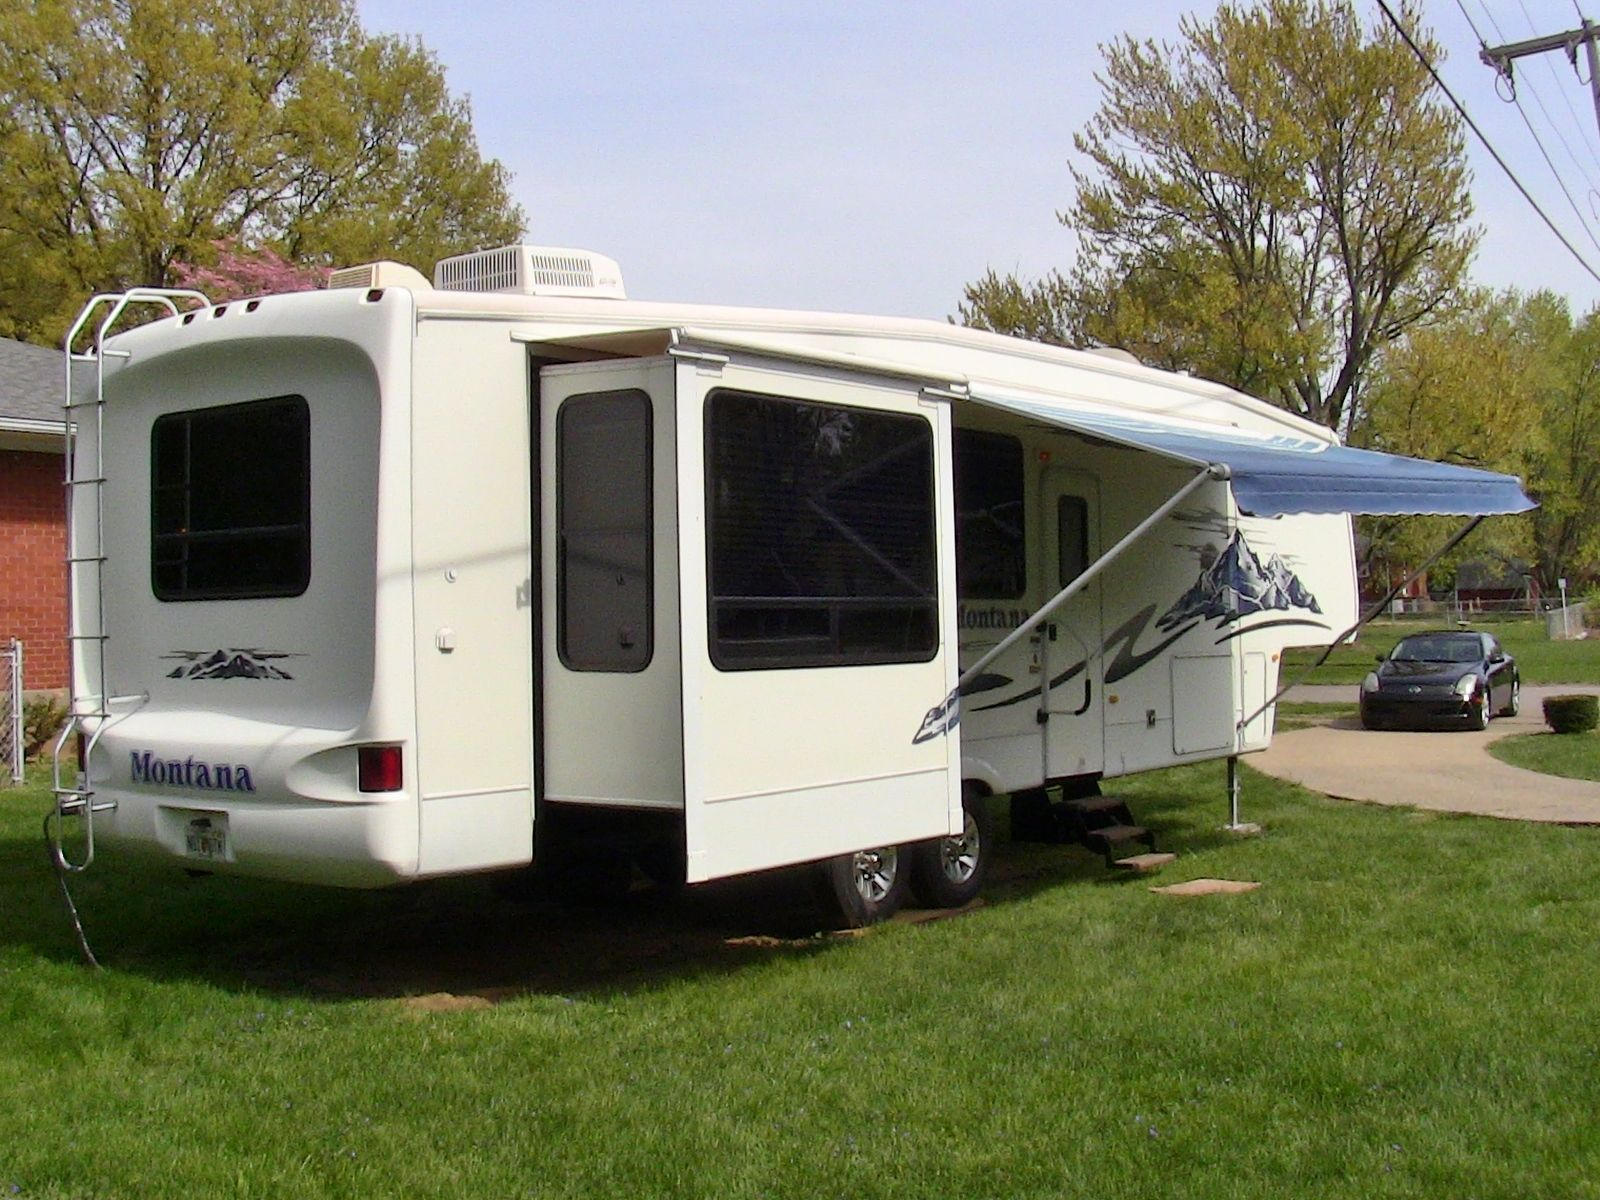 2006 Keystone Montana 3650rk fifth wheel...SOLD! Check out walk-through video of camper on our YouTube channel!  www.HelpSellMyRV.com Louisville Kentucky (502)645-3124